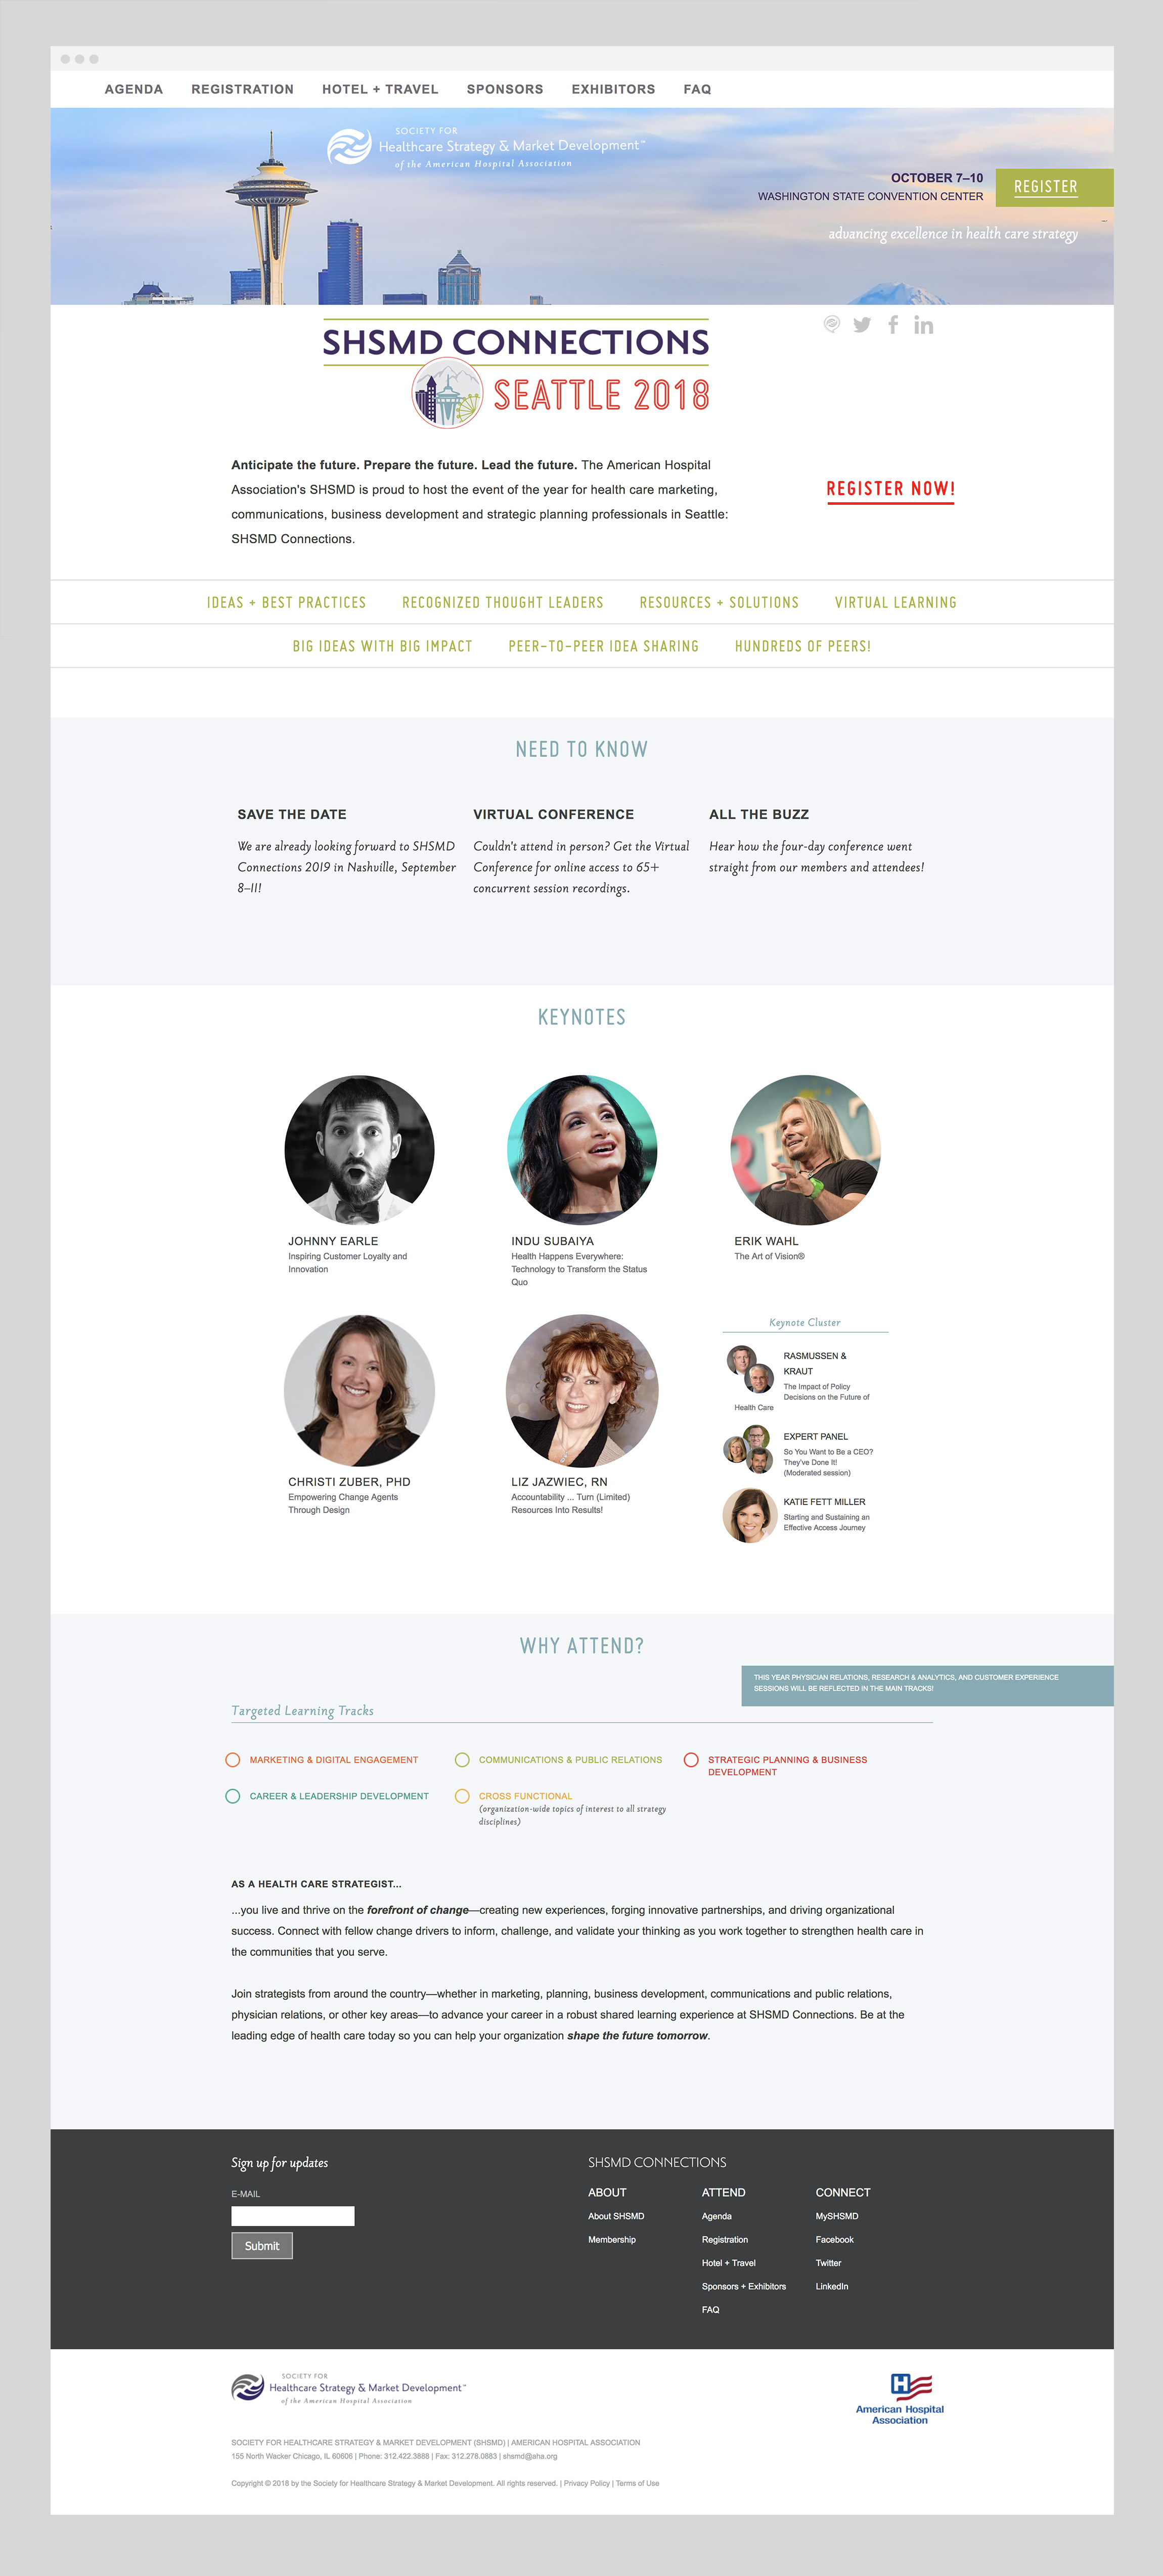 SHSMD Connections 2018 Conference Website Design by Hughes Design